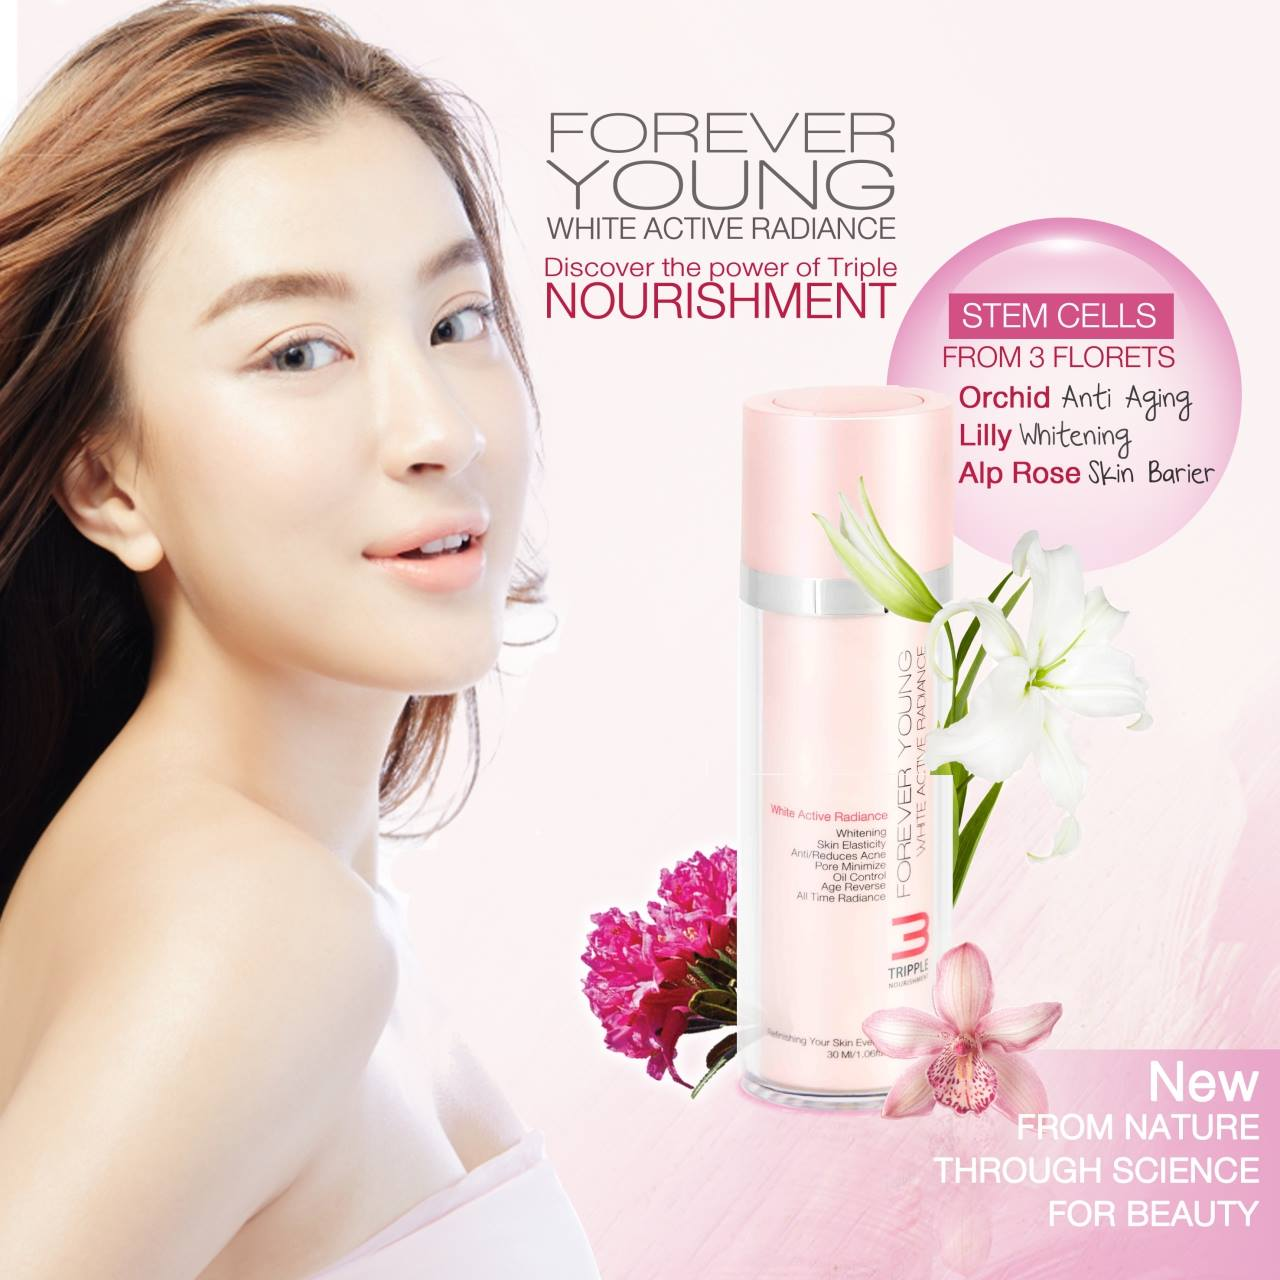 Forever young Triple Stem Cells White Active Radiance สเต็มเซลล์รวมกันถึง 3